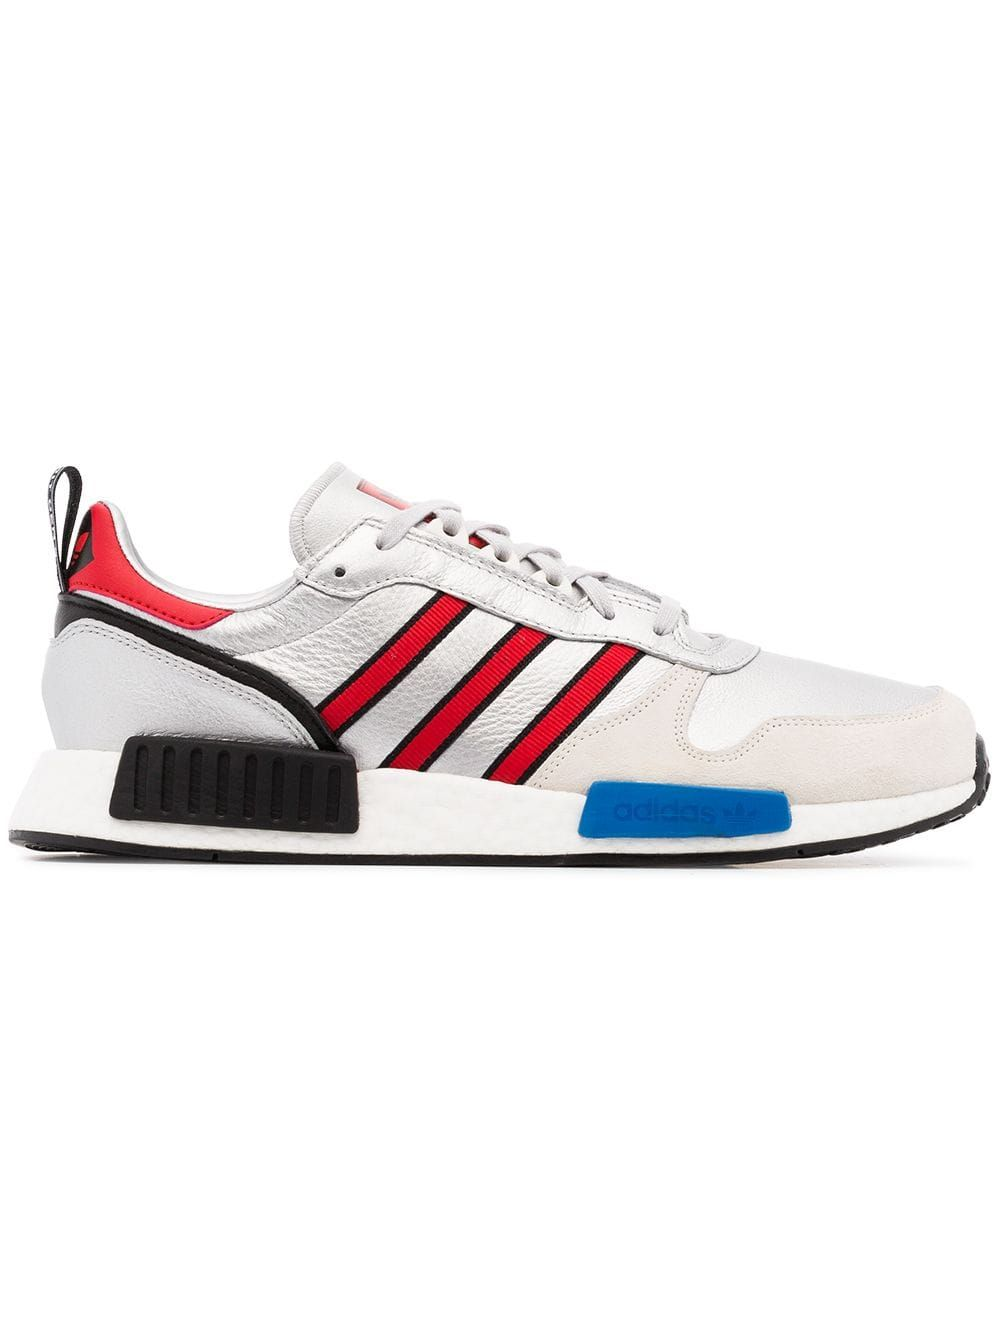 9ff3eae3a3 Adidas Never Made multicoloured Rising Star R1 leather sneakers - Metallic